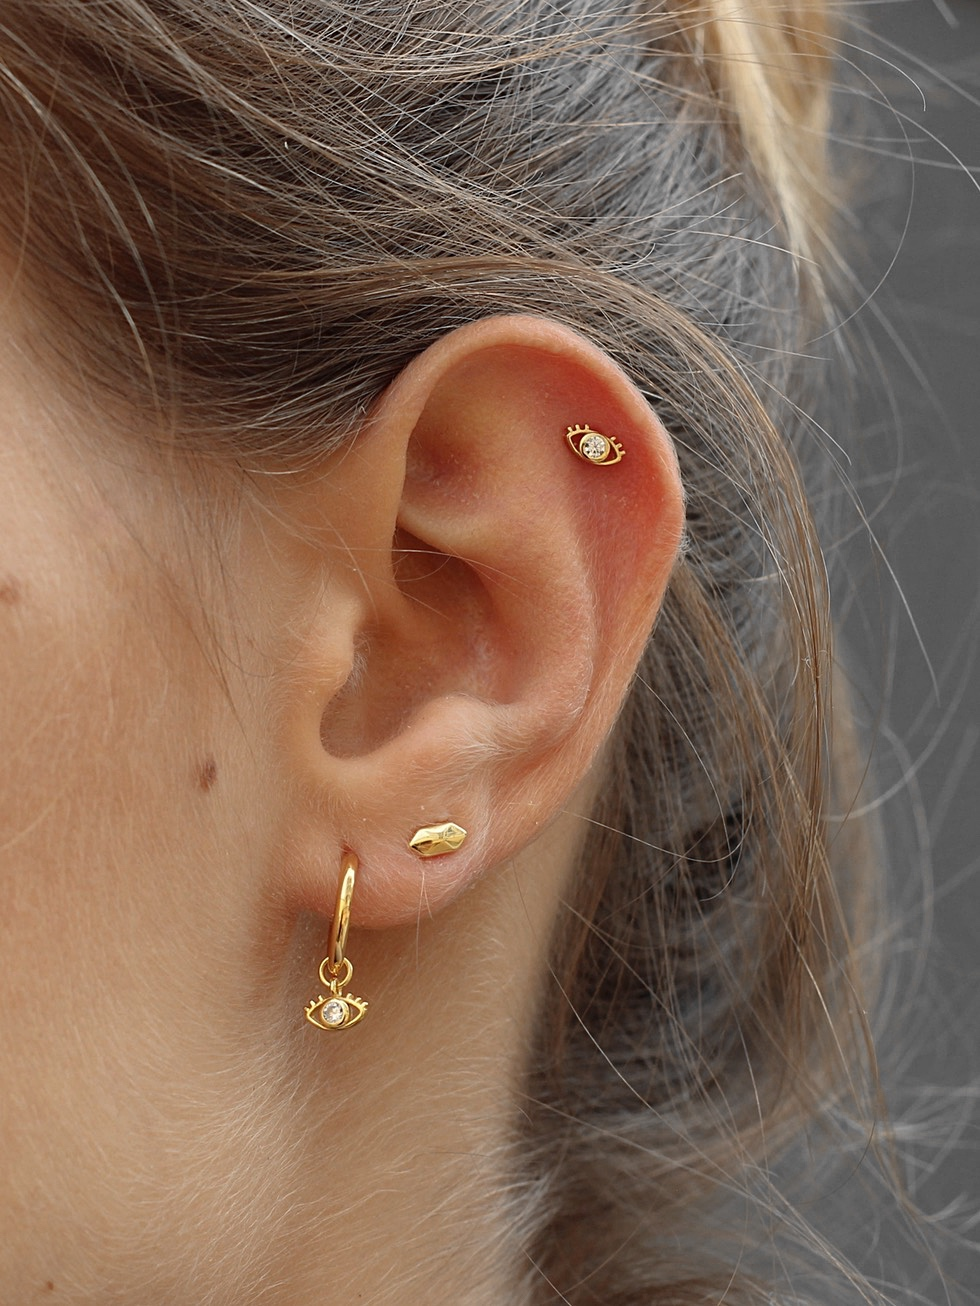 Tiny EYE stud gold earrings